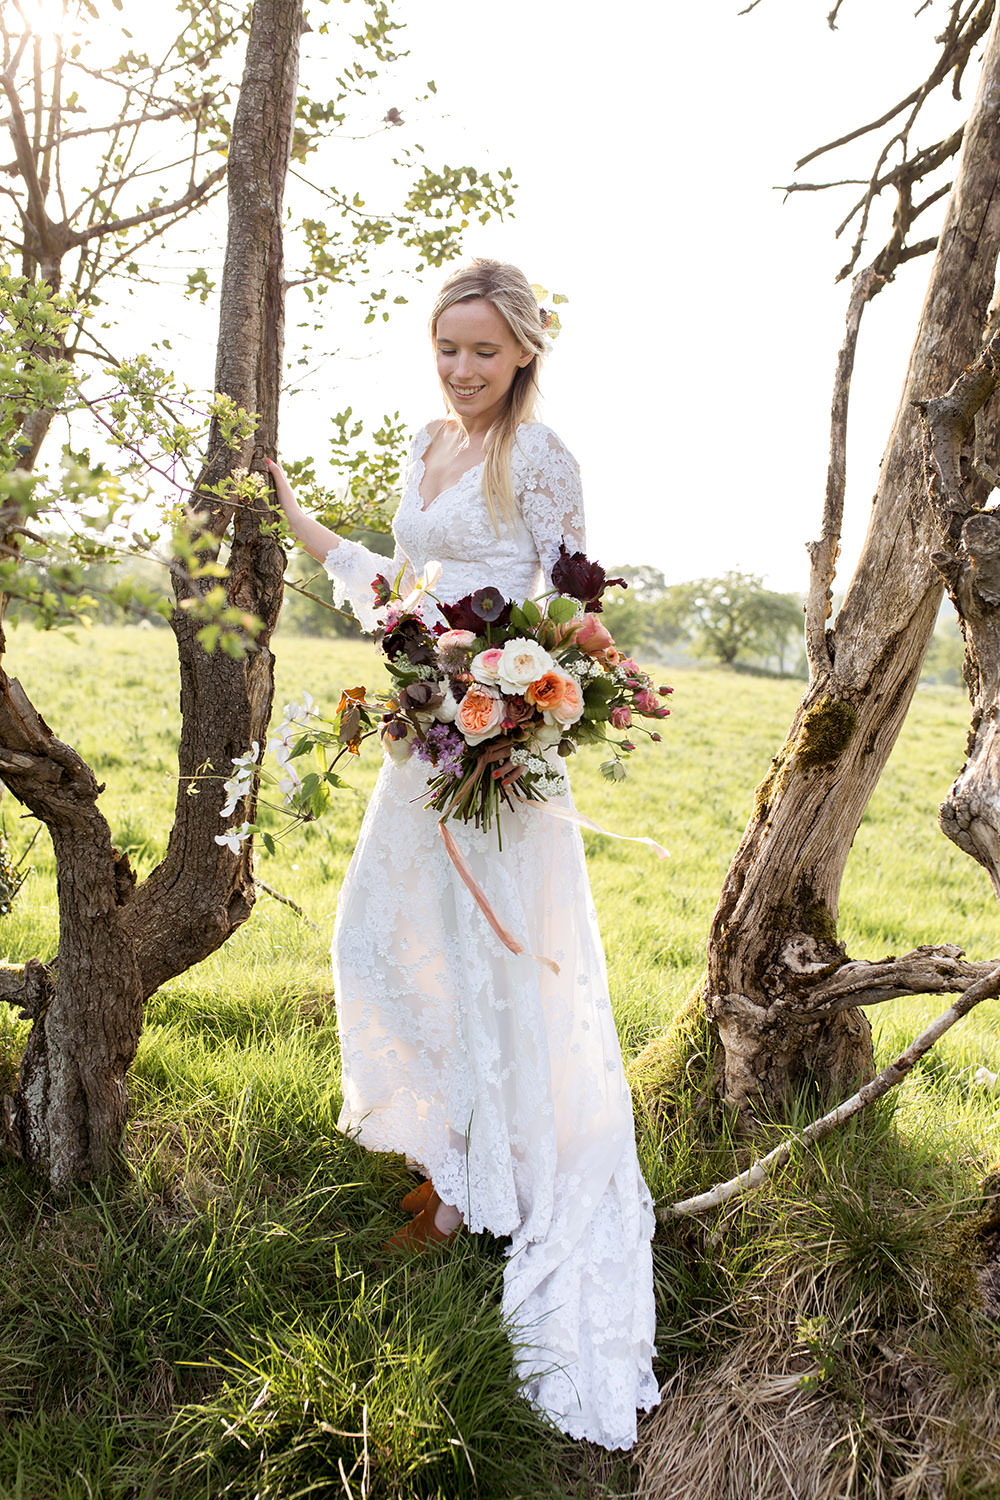 Bride Bridal Dress Gown Lace Sleeves Train Light Airy Summer Wedding Ideas Charlotte Palazzo Photography